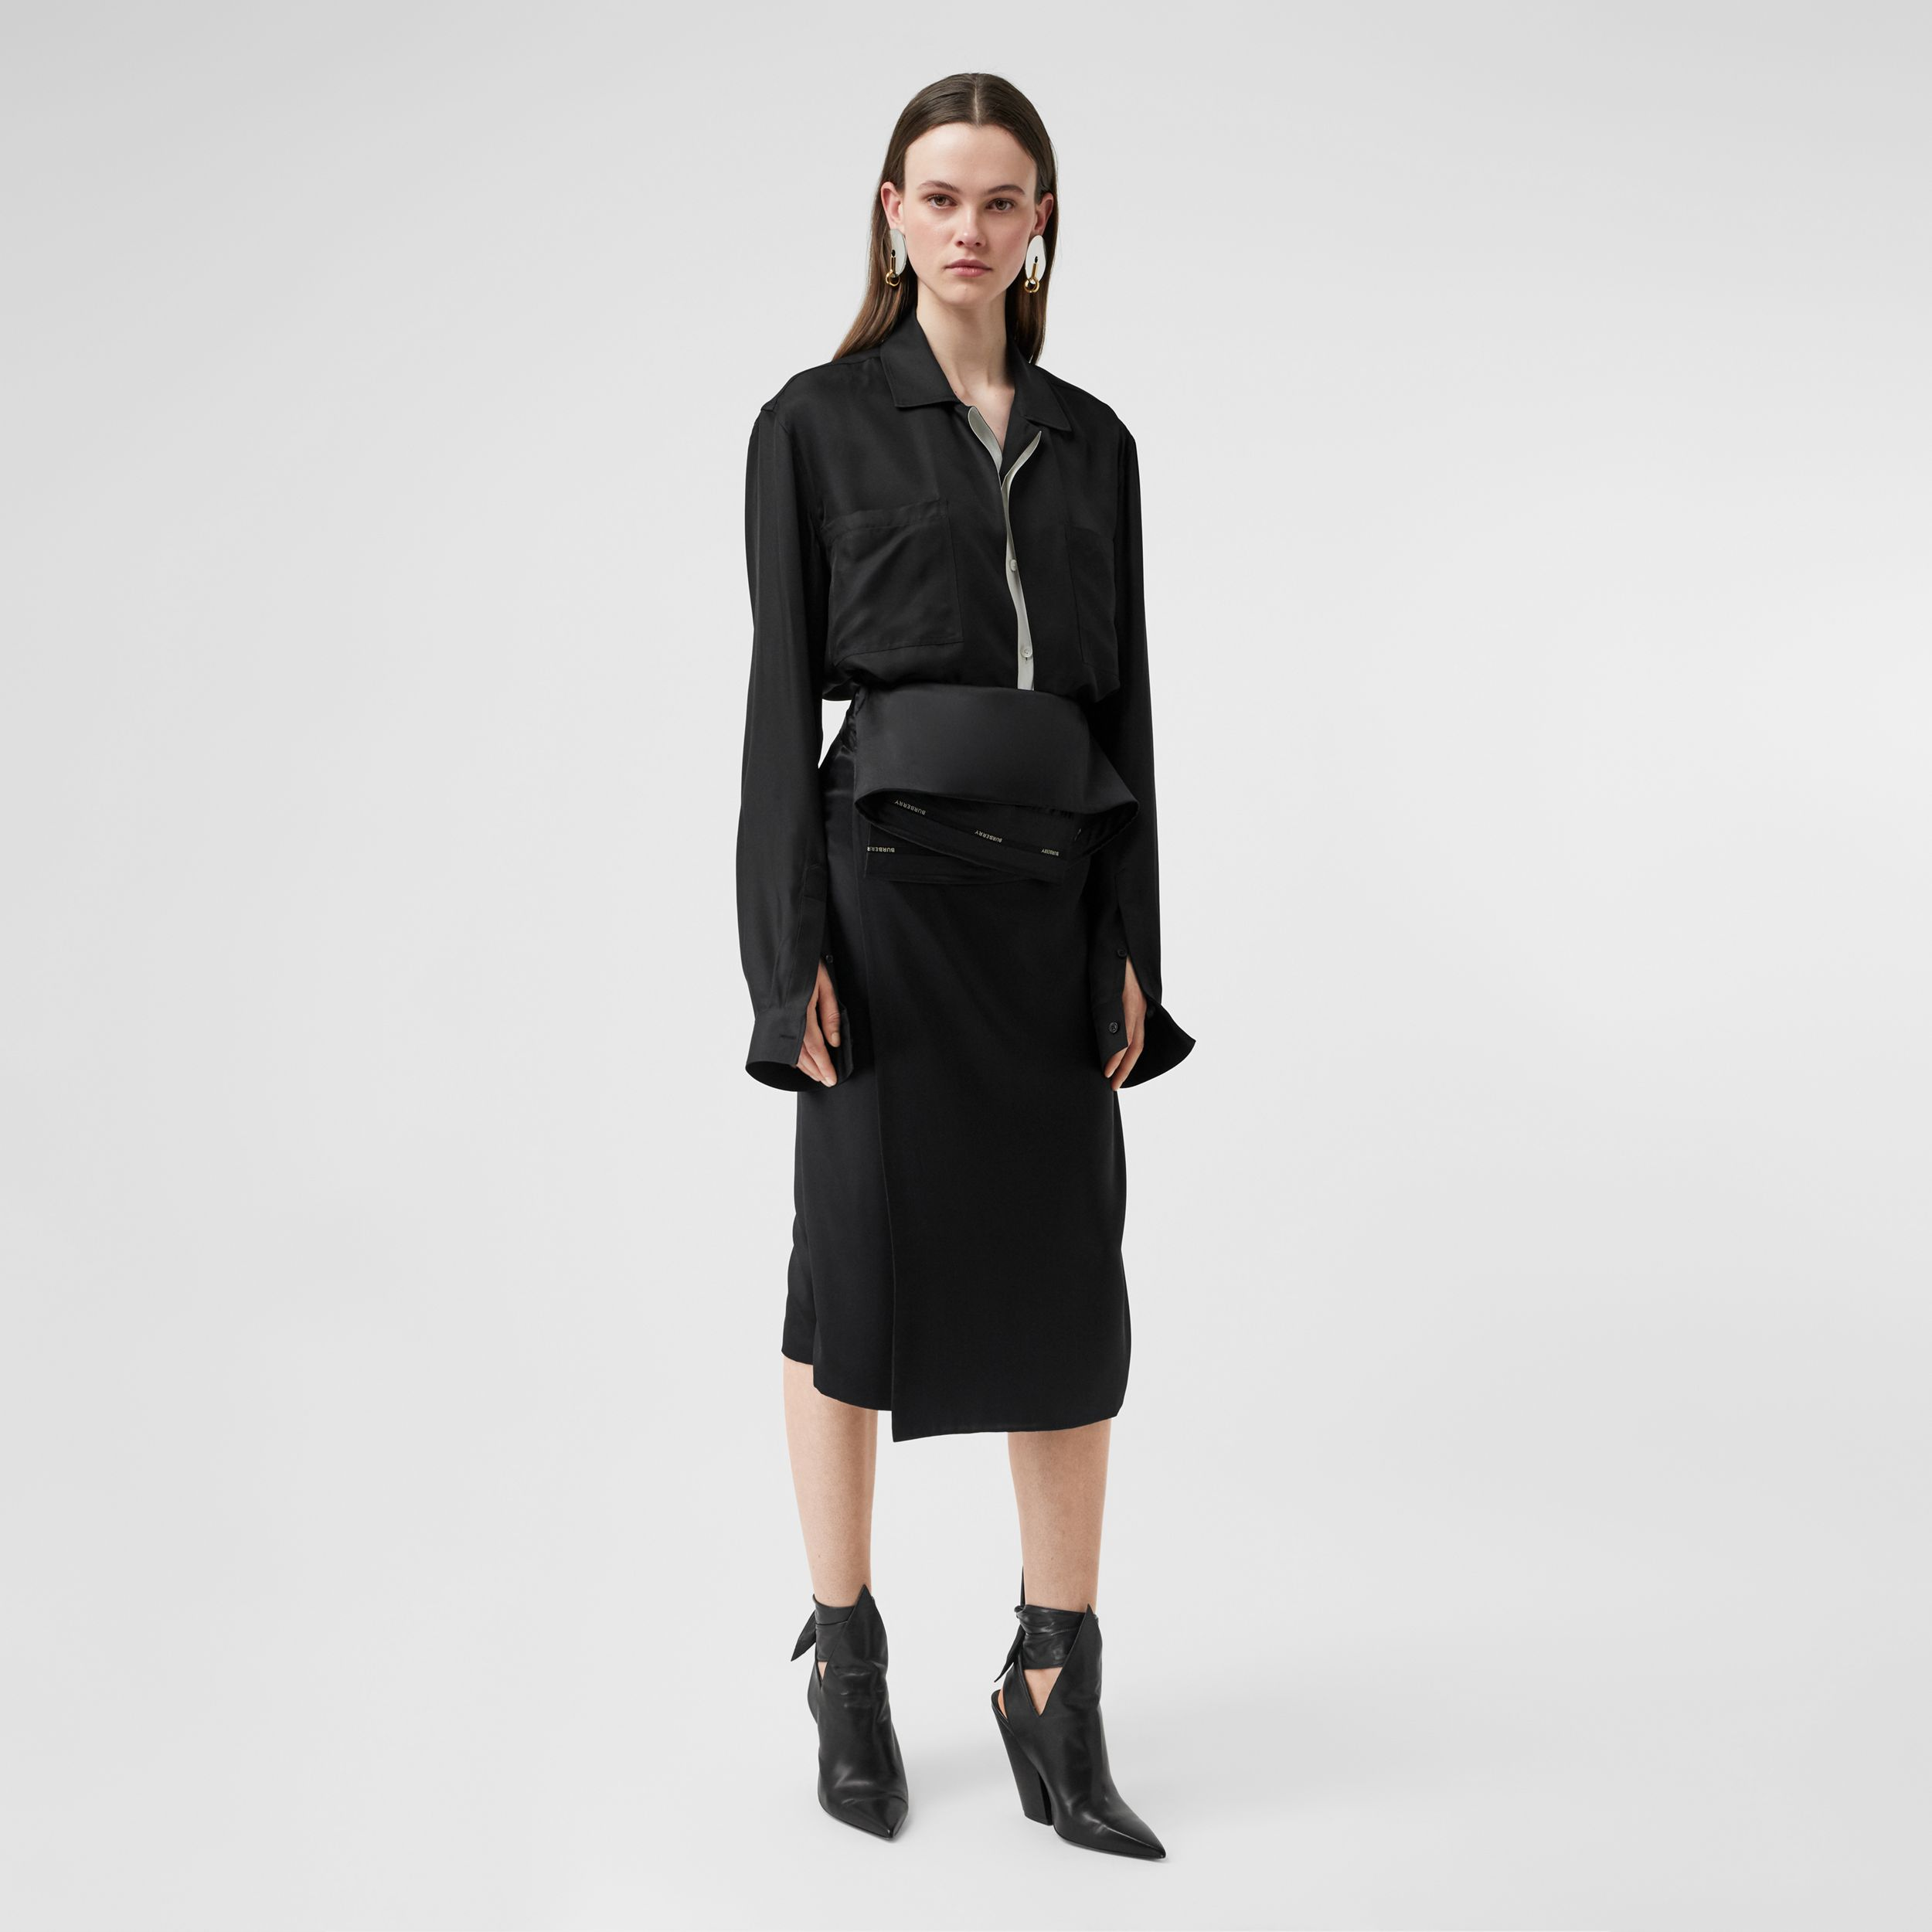 Silk Satin Foldover Skirt in Black - Women | Burberry - 1